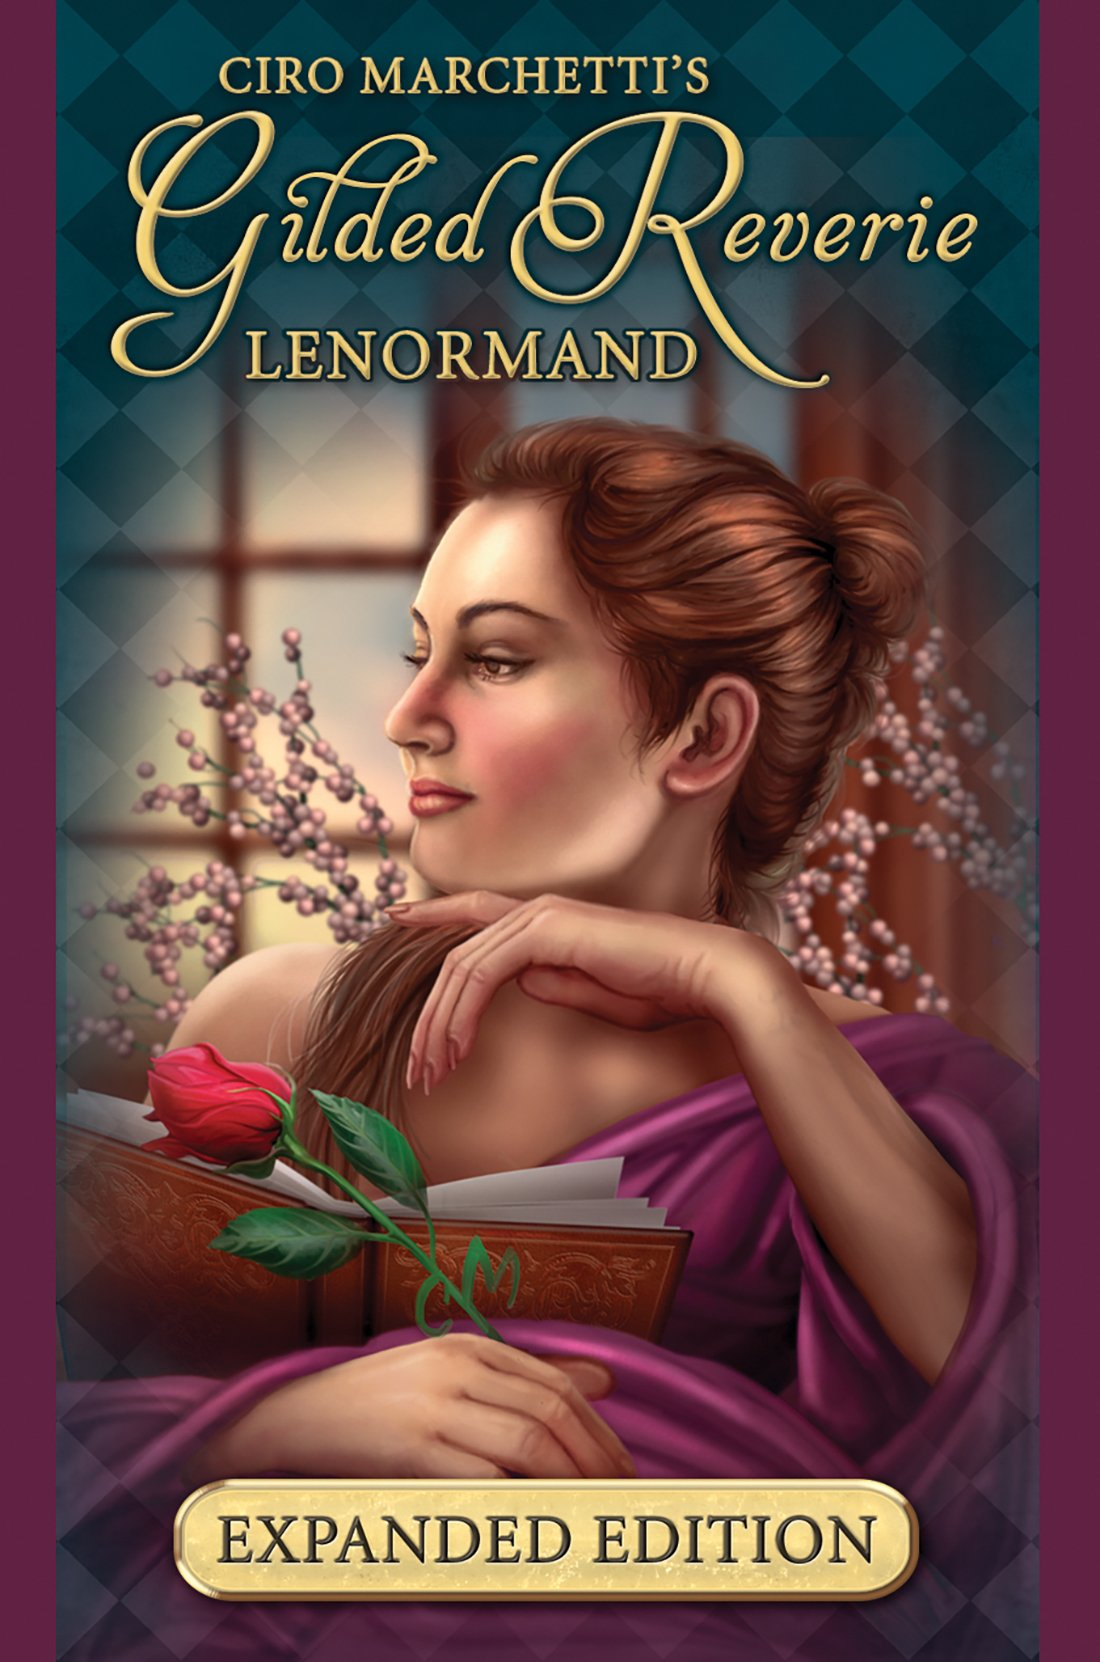 Gilded Reverie Lenormand: Expanded Edition Ленорман на Чиро Марчети